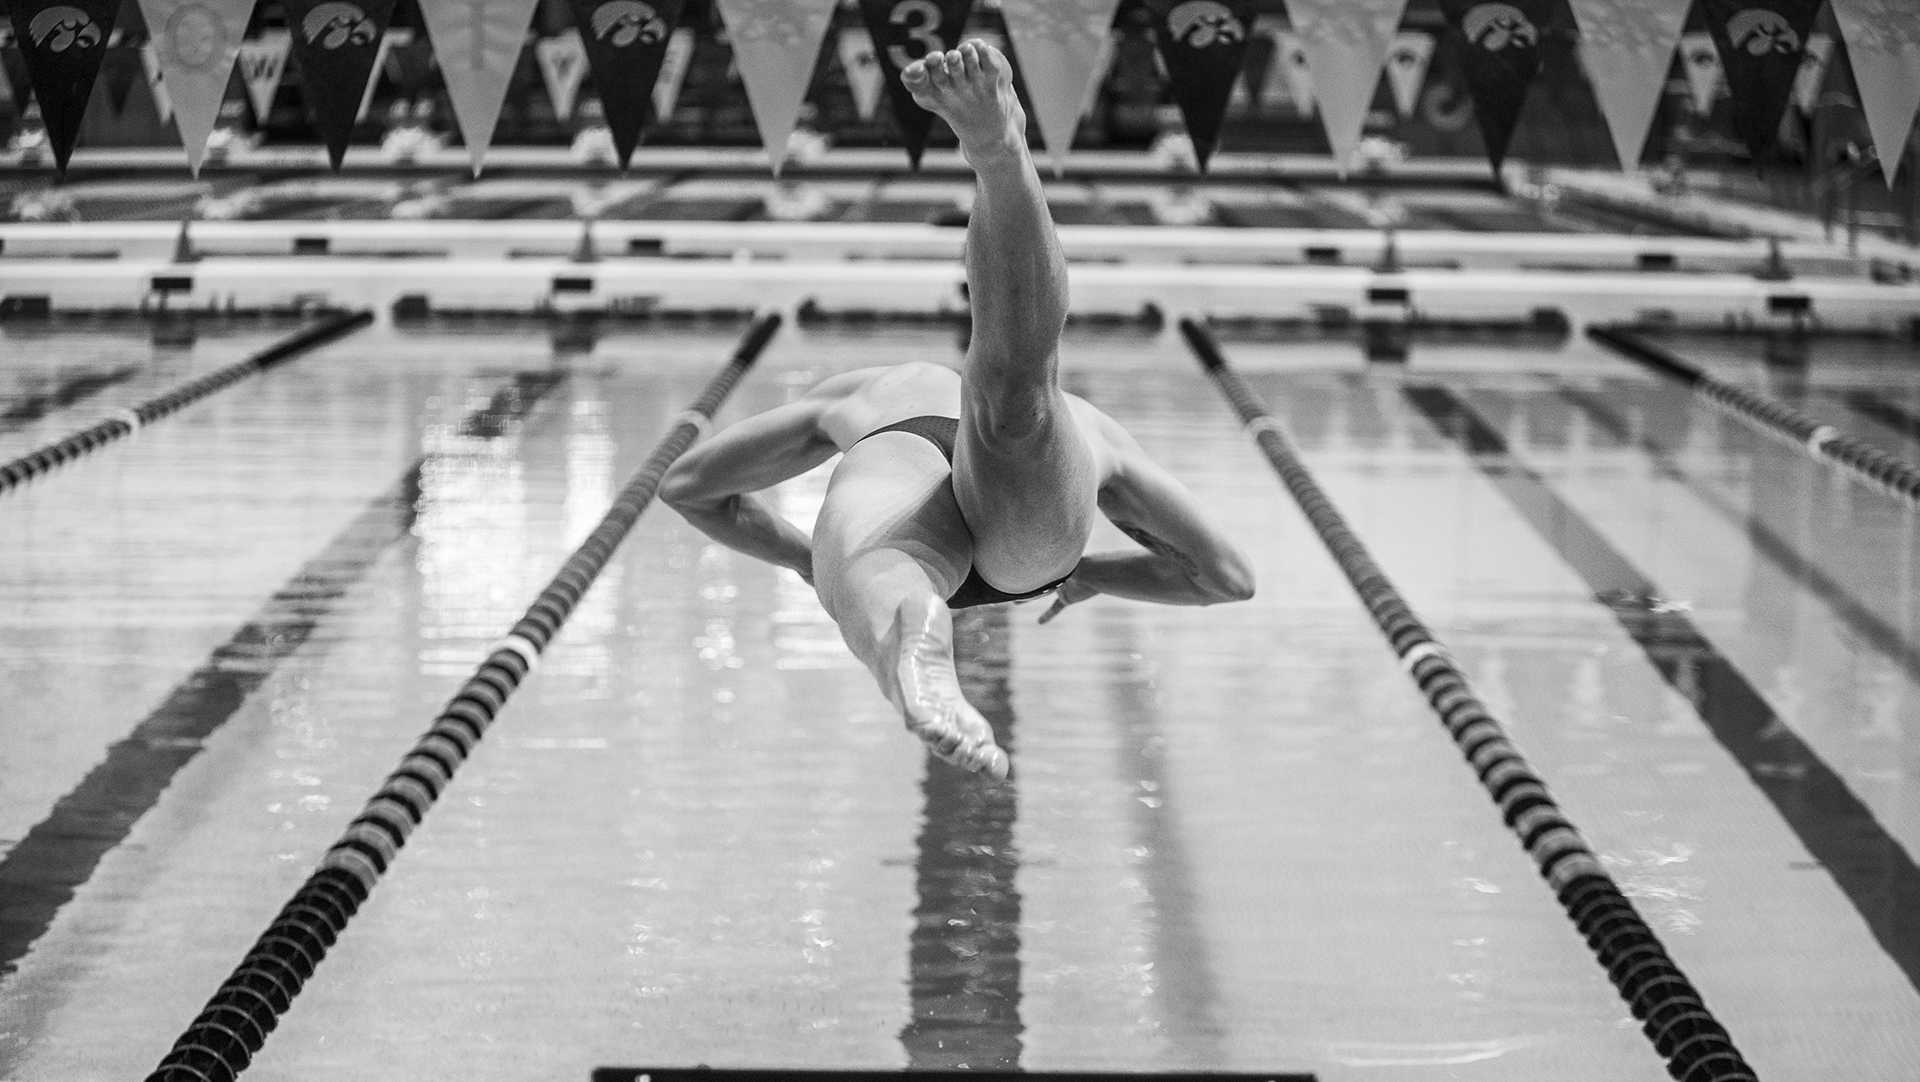 A member of the Iowa men's 400m relay team leaves the blocks during the Senior Day meet between Iowa and Minnesota at the Campus Recreation and Wellness Center on Friday, Oct. 27, 2017. The Iowa men's swimming team beat the 21st ranked Minnesota Golden Gophers, 168-132. (Ben Smith/The Daily Iowan)